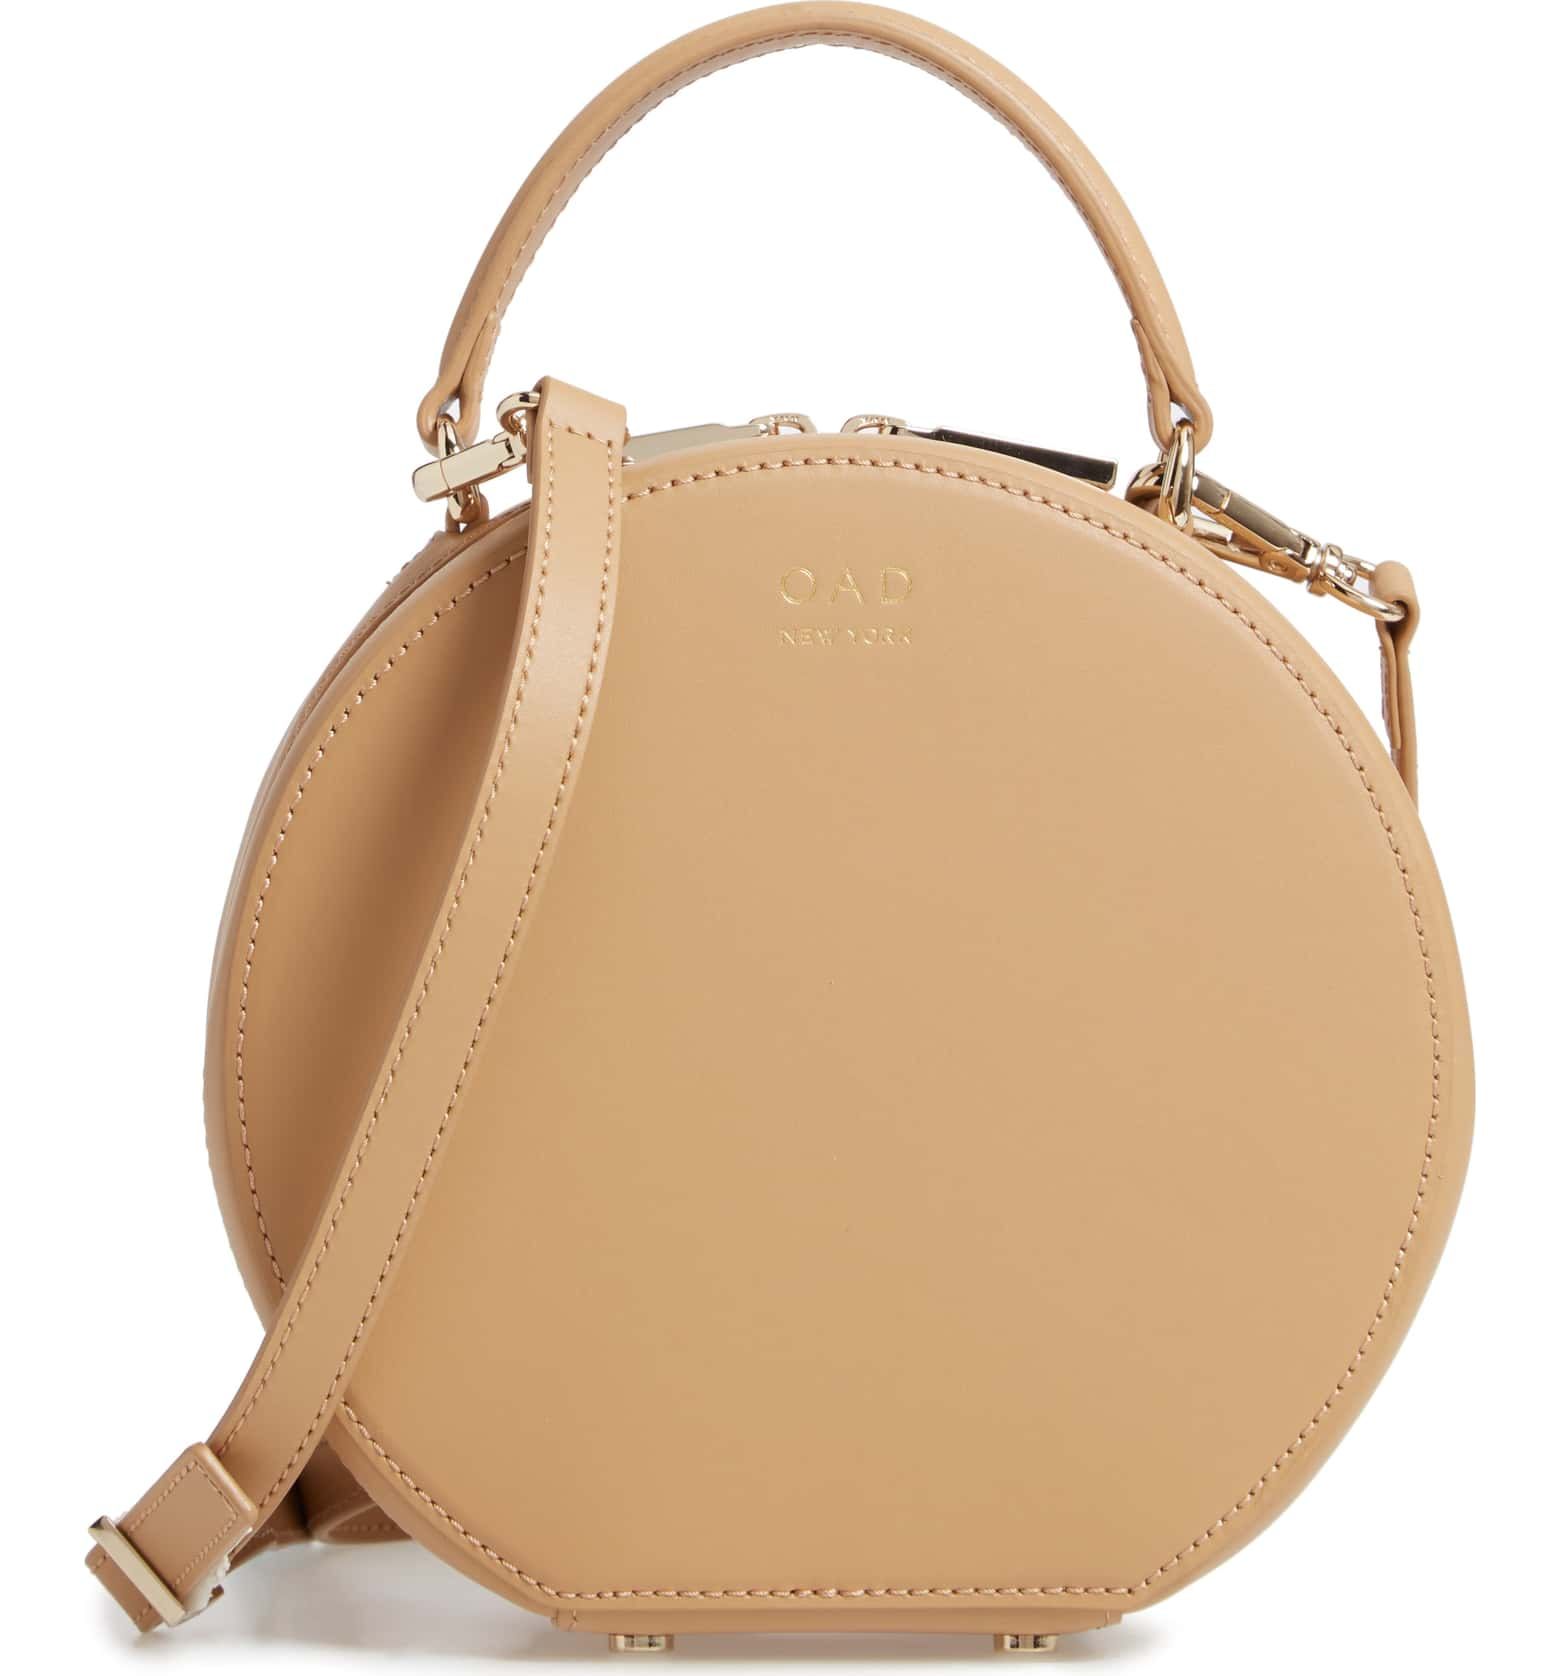 The OAD Mini Circle Bag | Best Round Bags for Spring 2019 | CoffeeAndHandbags.com